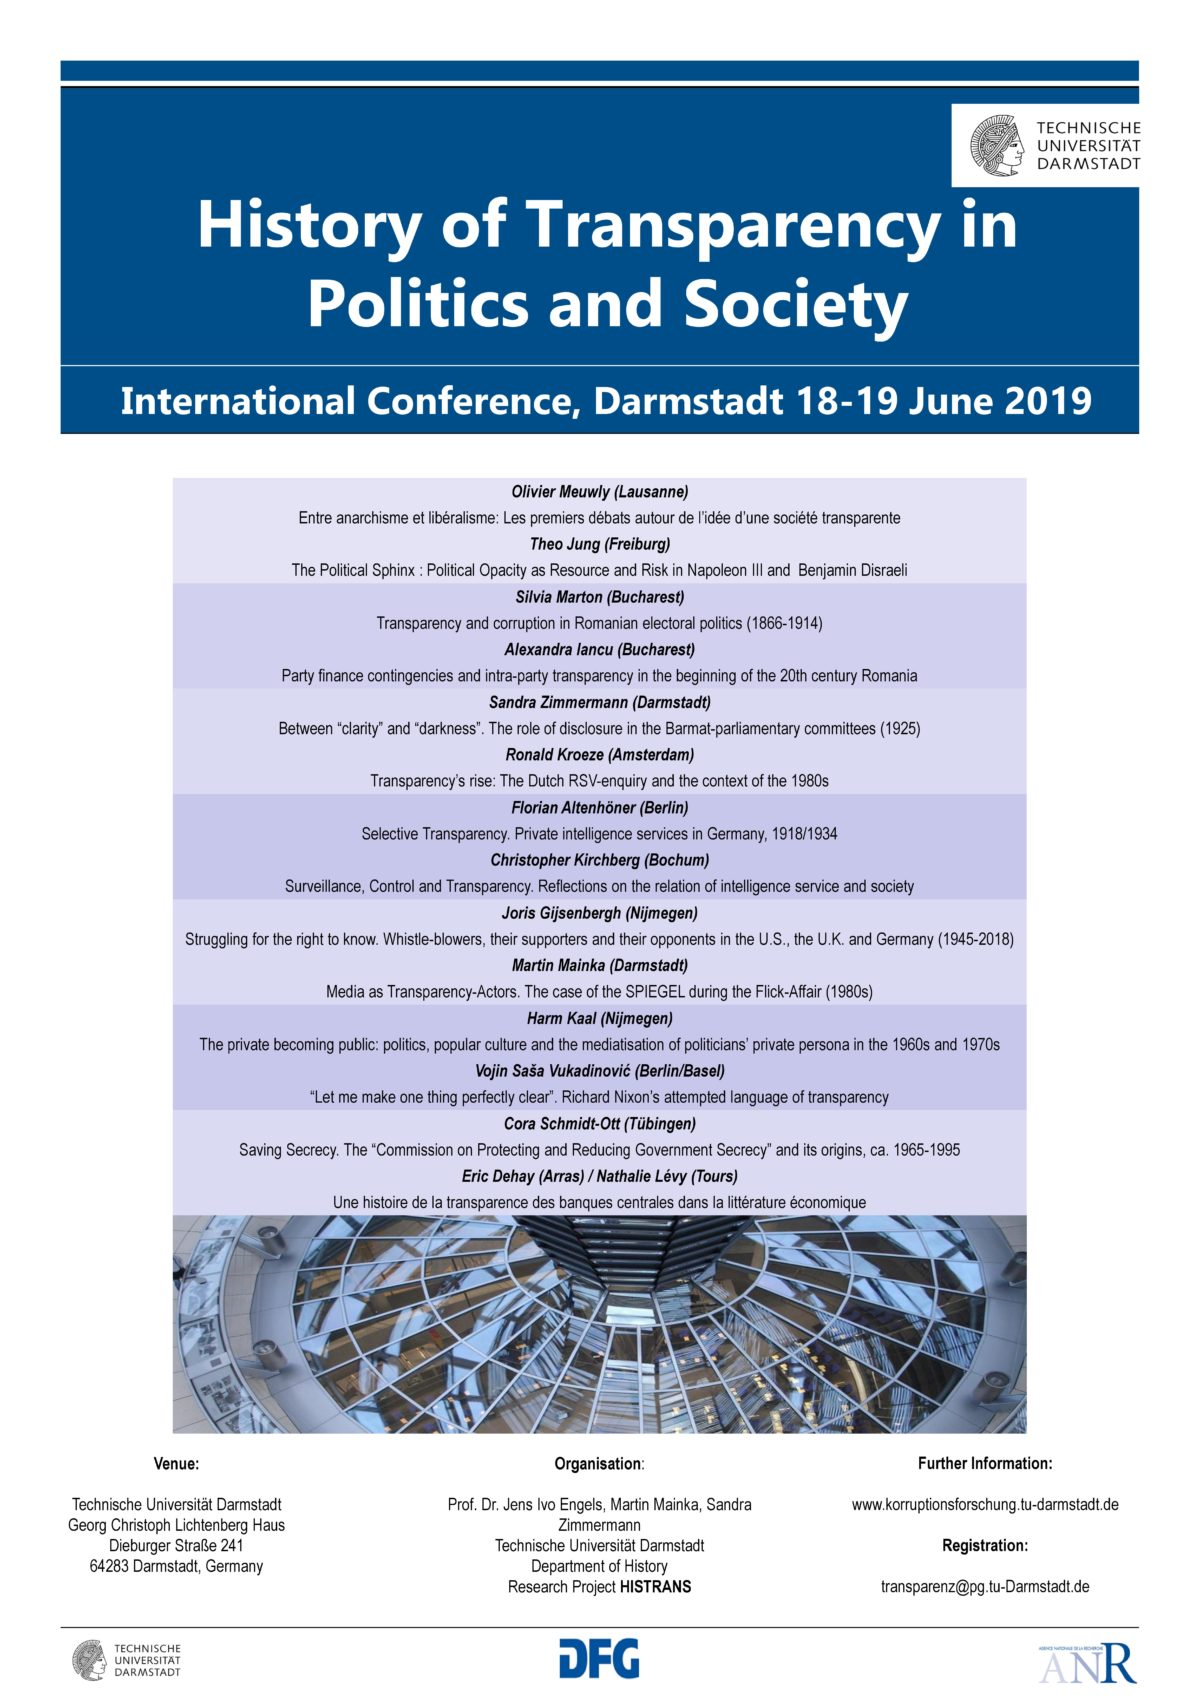 """History of Transparency in Politics and Society"" Internationale Tagung in Darmstadt, 18.-19. Juni 2019"